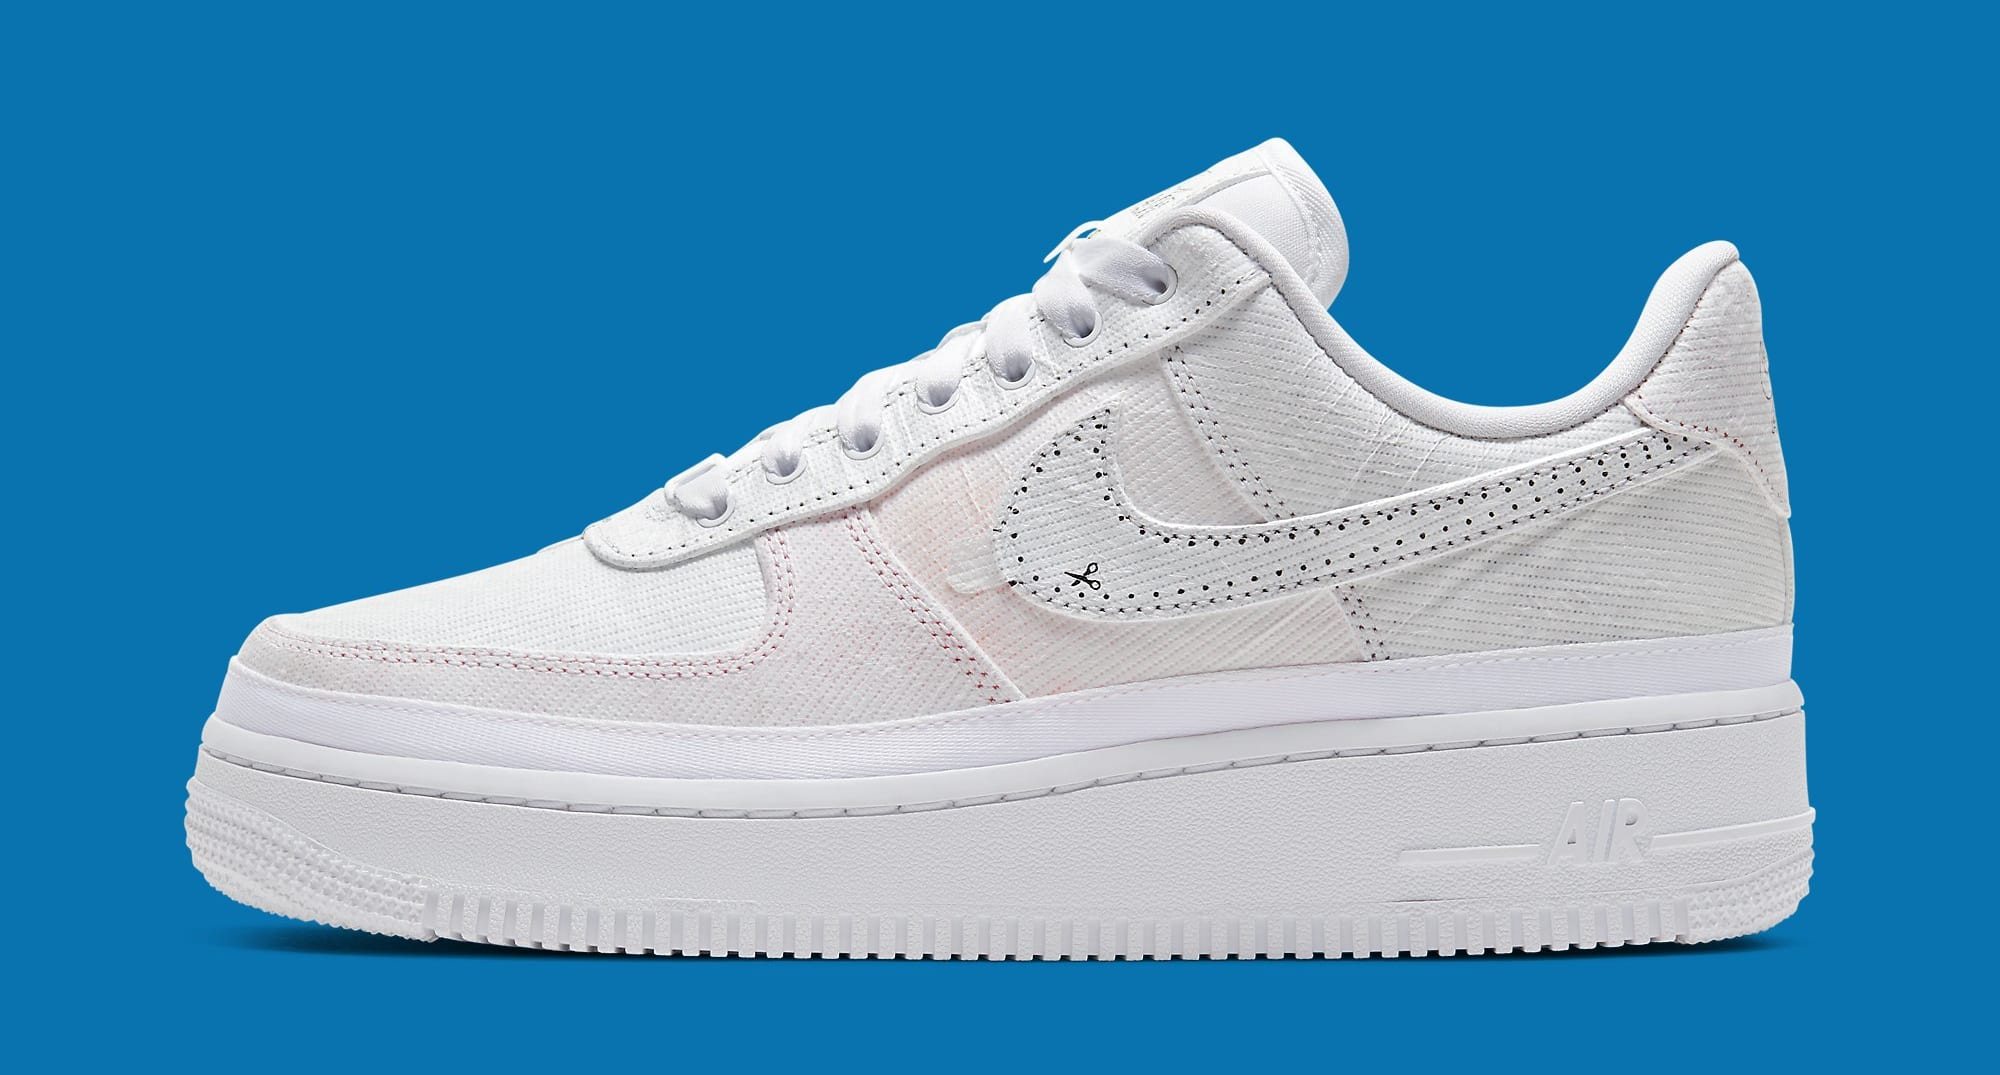 Nike Air Force 1 Low 'Reveal' CJ1650-100 Lateral